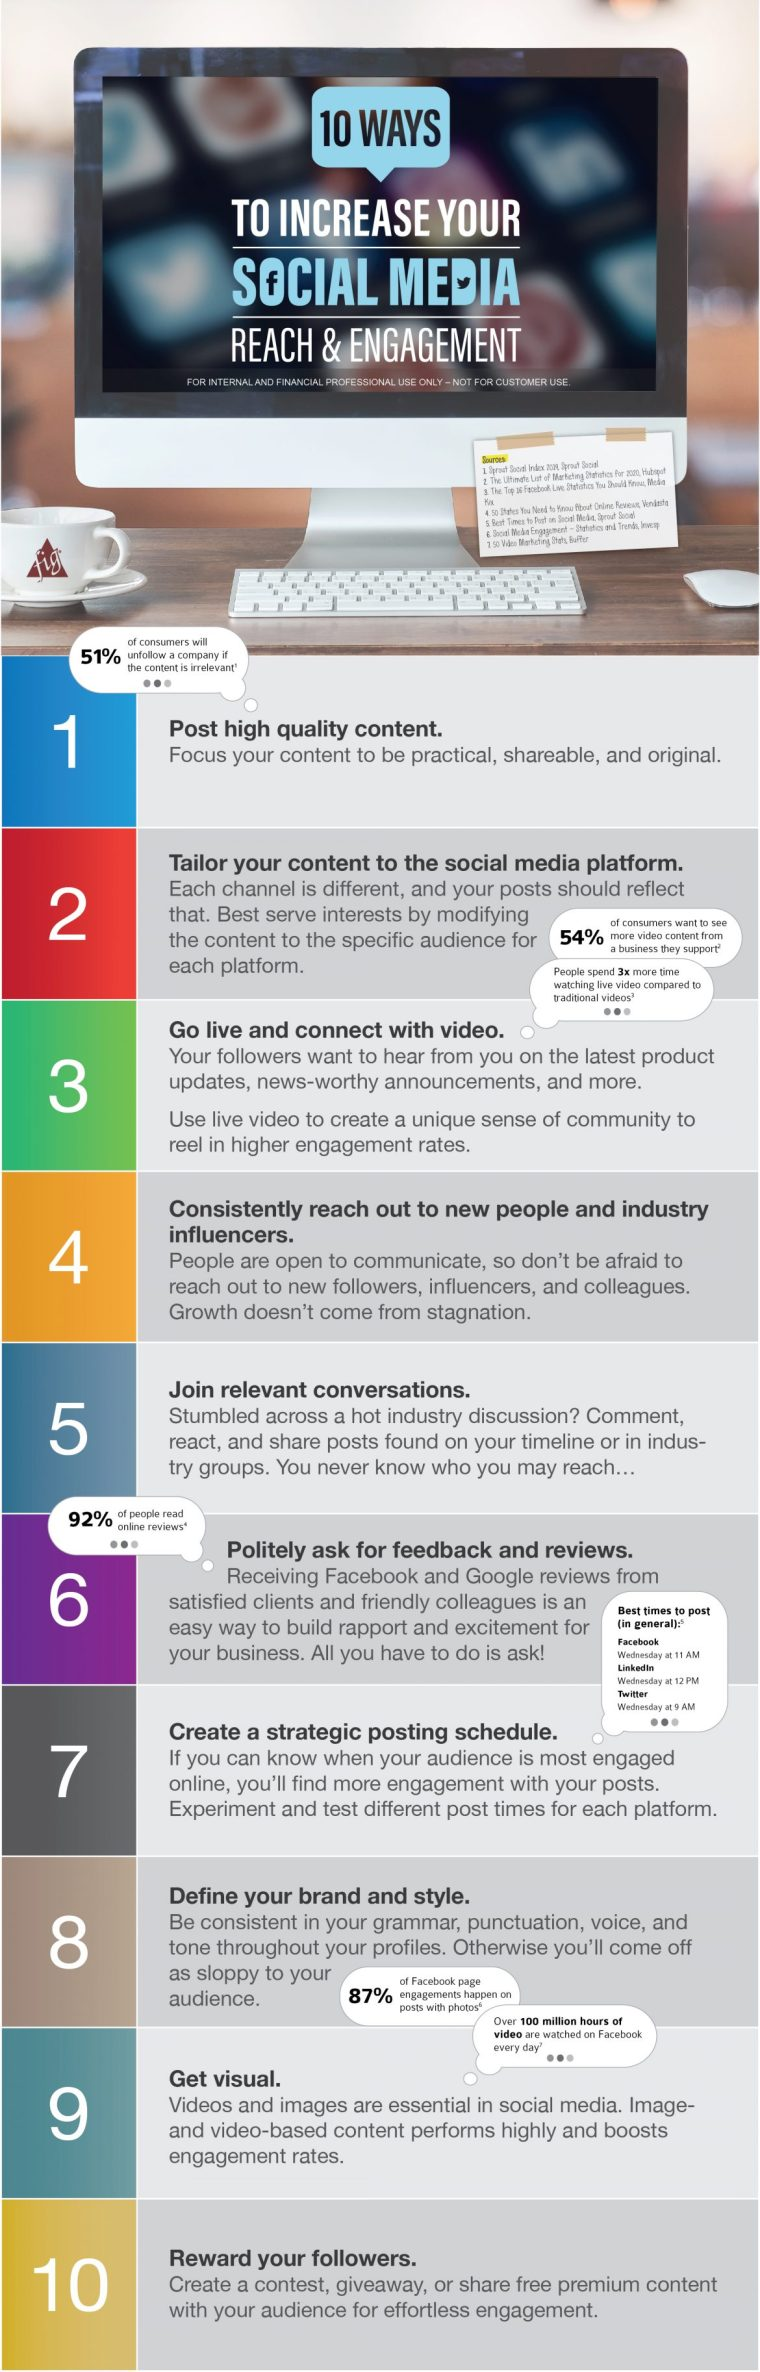 Infographic provides tips on how to use social for business